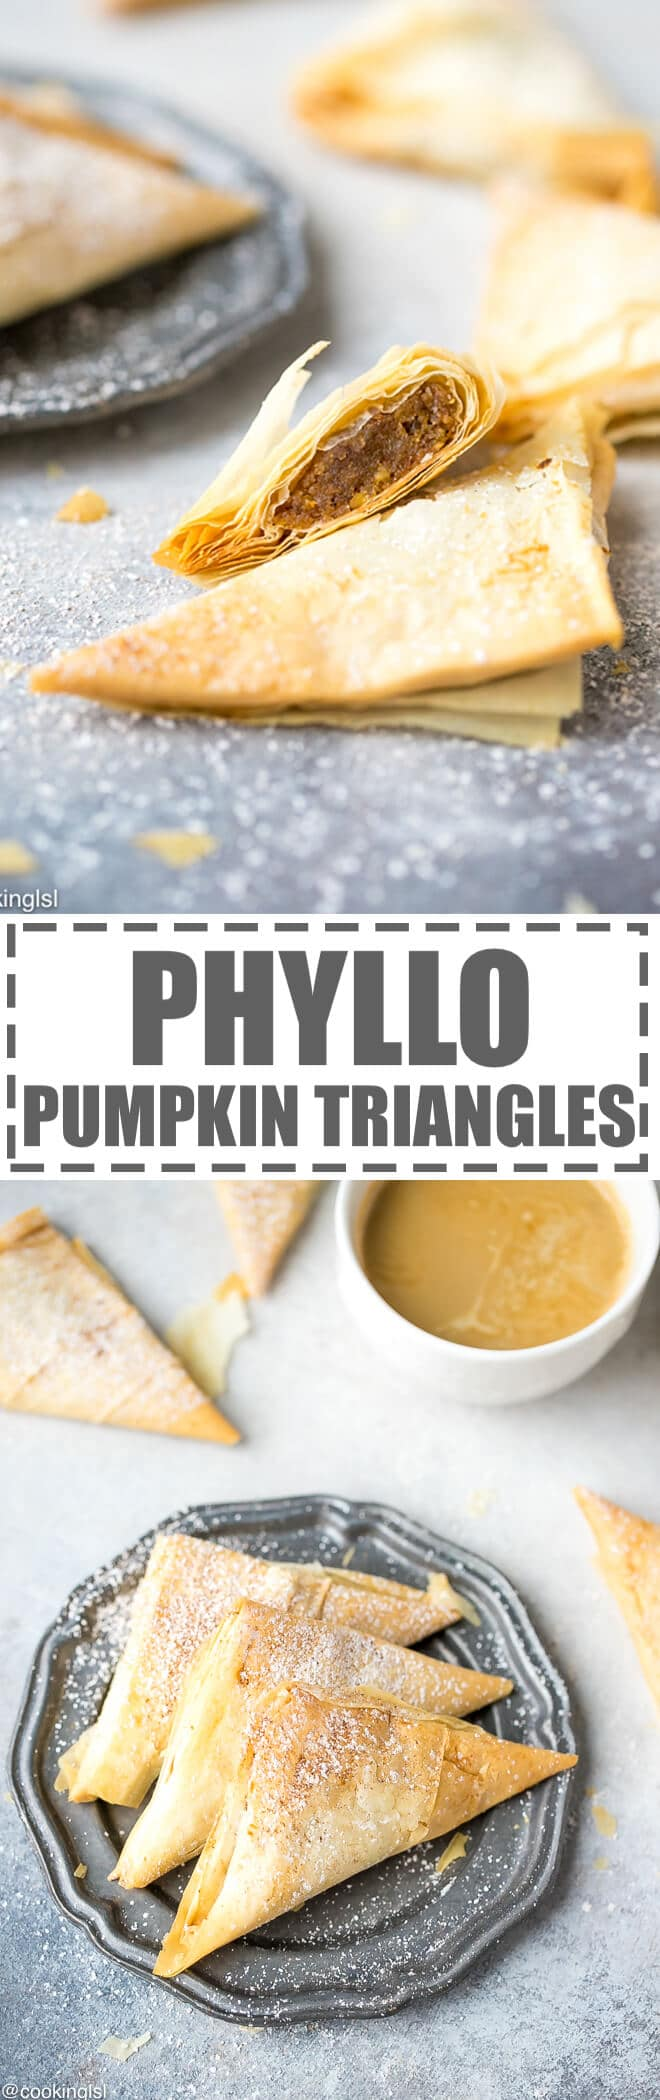 Pumpkin Phyllo Triangles Recipe - flakey filo bites, filled with flavorful mixture of shredded pumpkin, breadcrumbs, nuts, sugar and cinnamon. Perfect for a cup of coffee or tea.